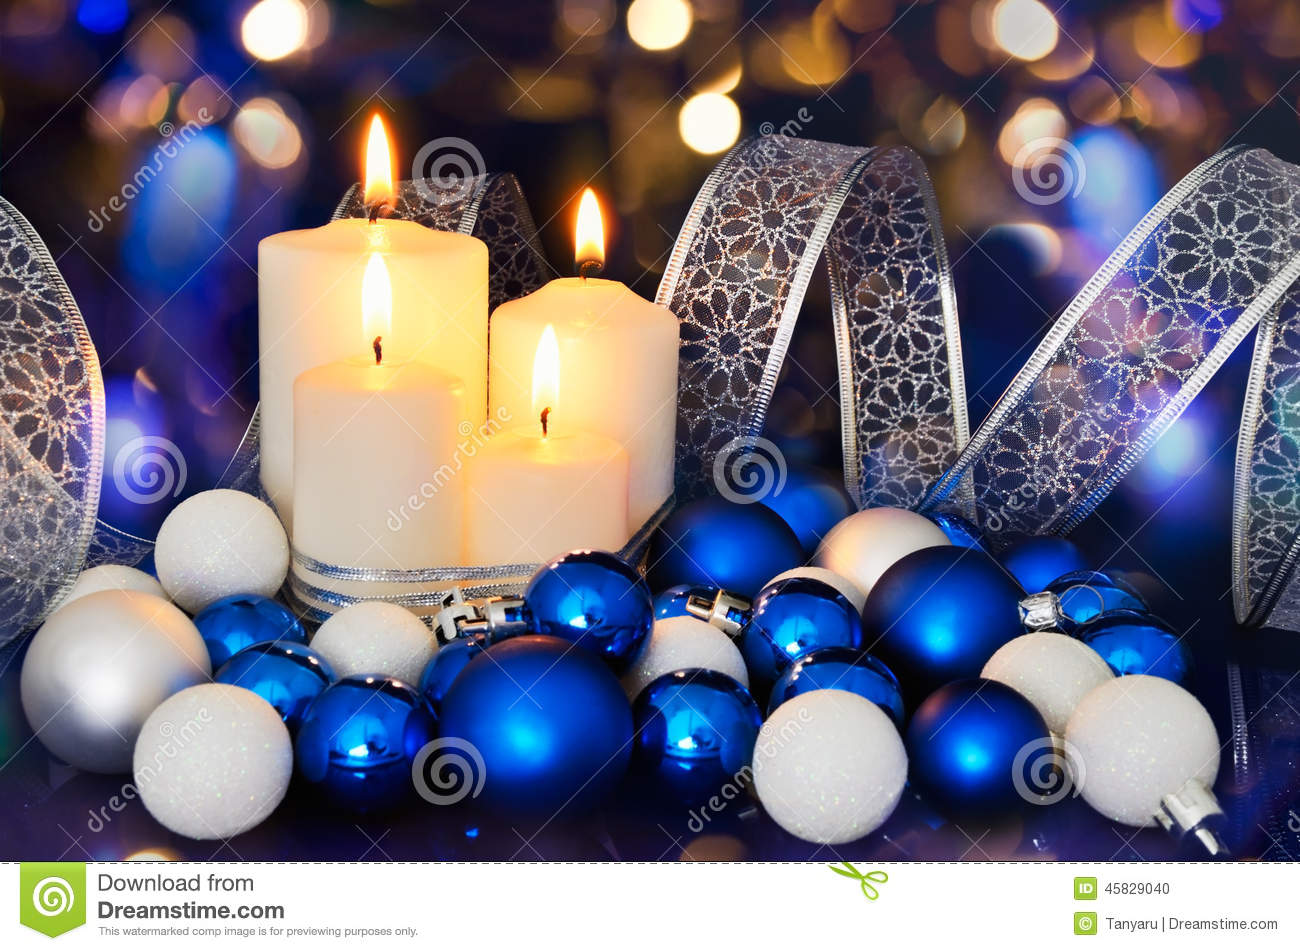 lighted candles and blue white christmas tree decorations on the